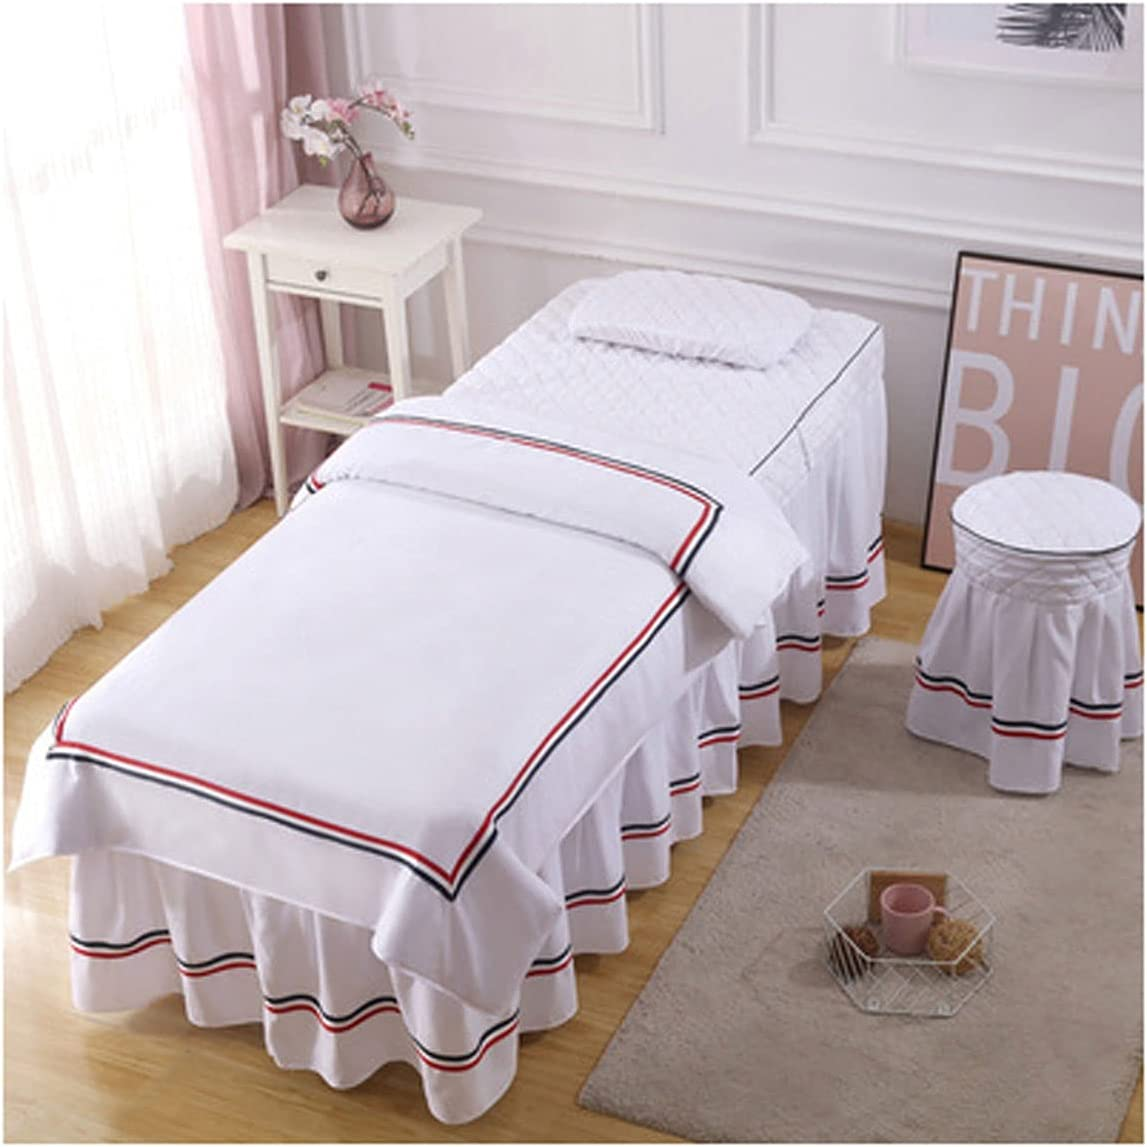 4-Piece Outlet ☆ Free Shipping Selling Massage Table Sheet Skirt Set Beaut